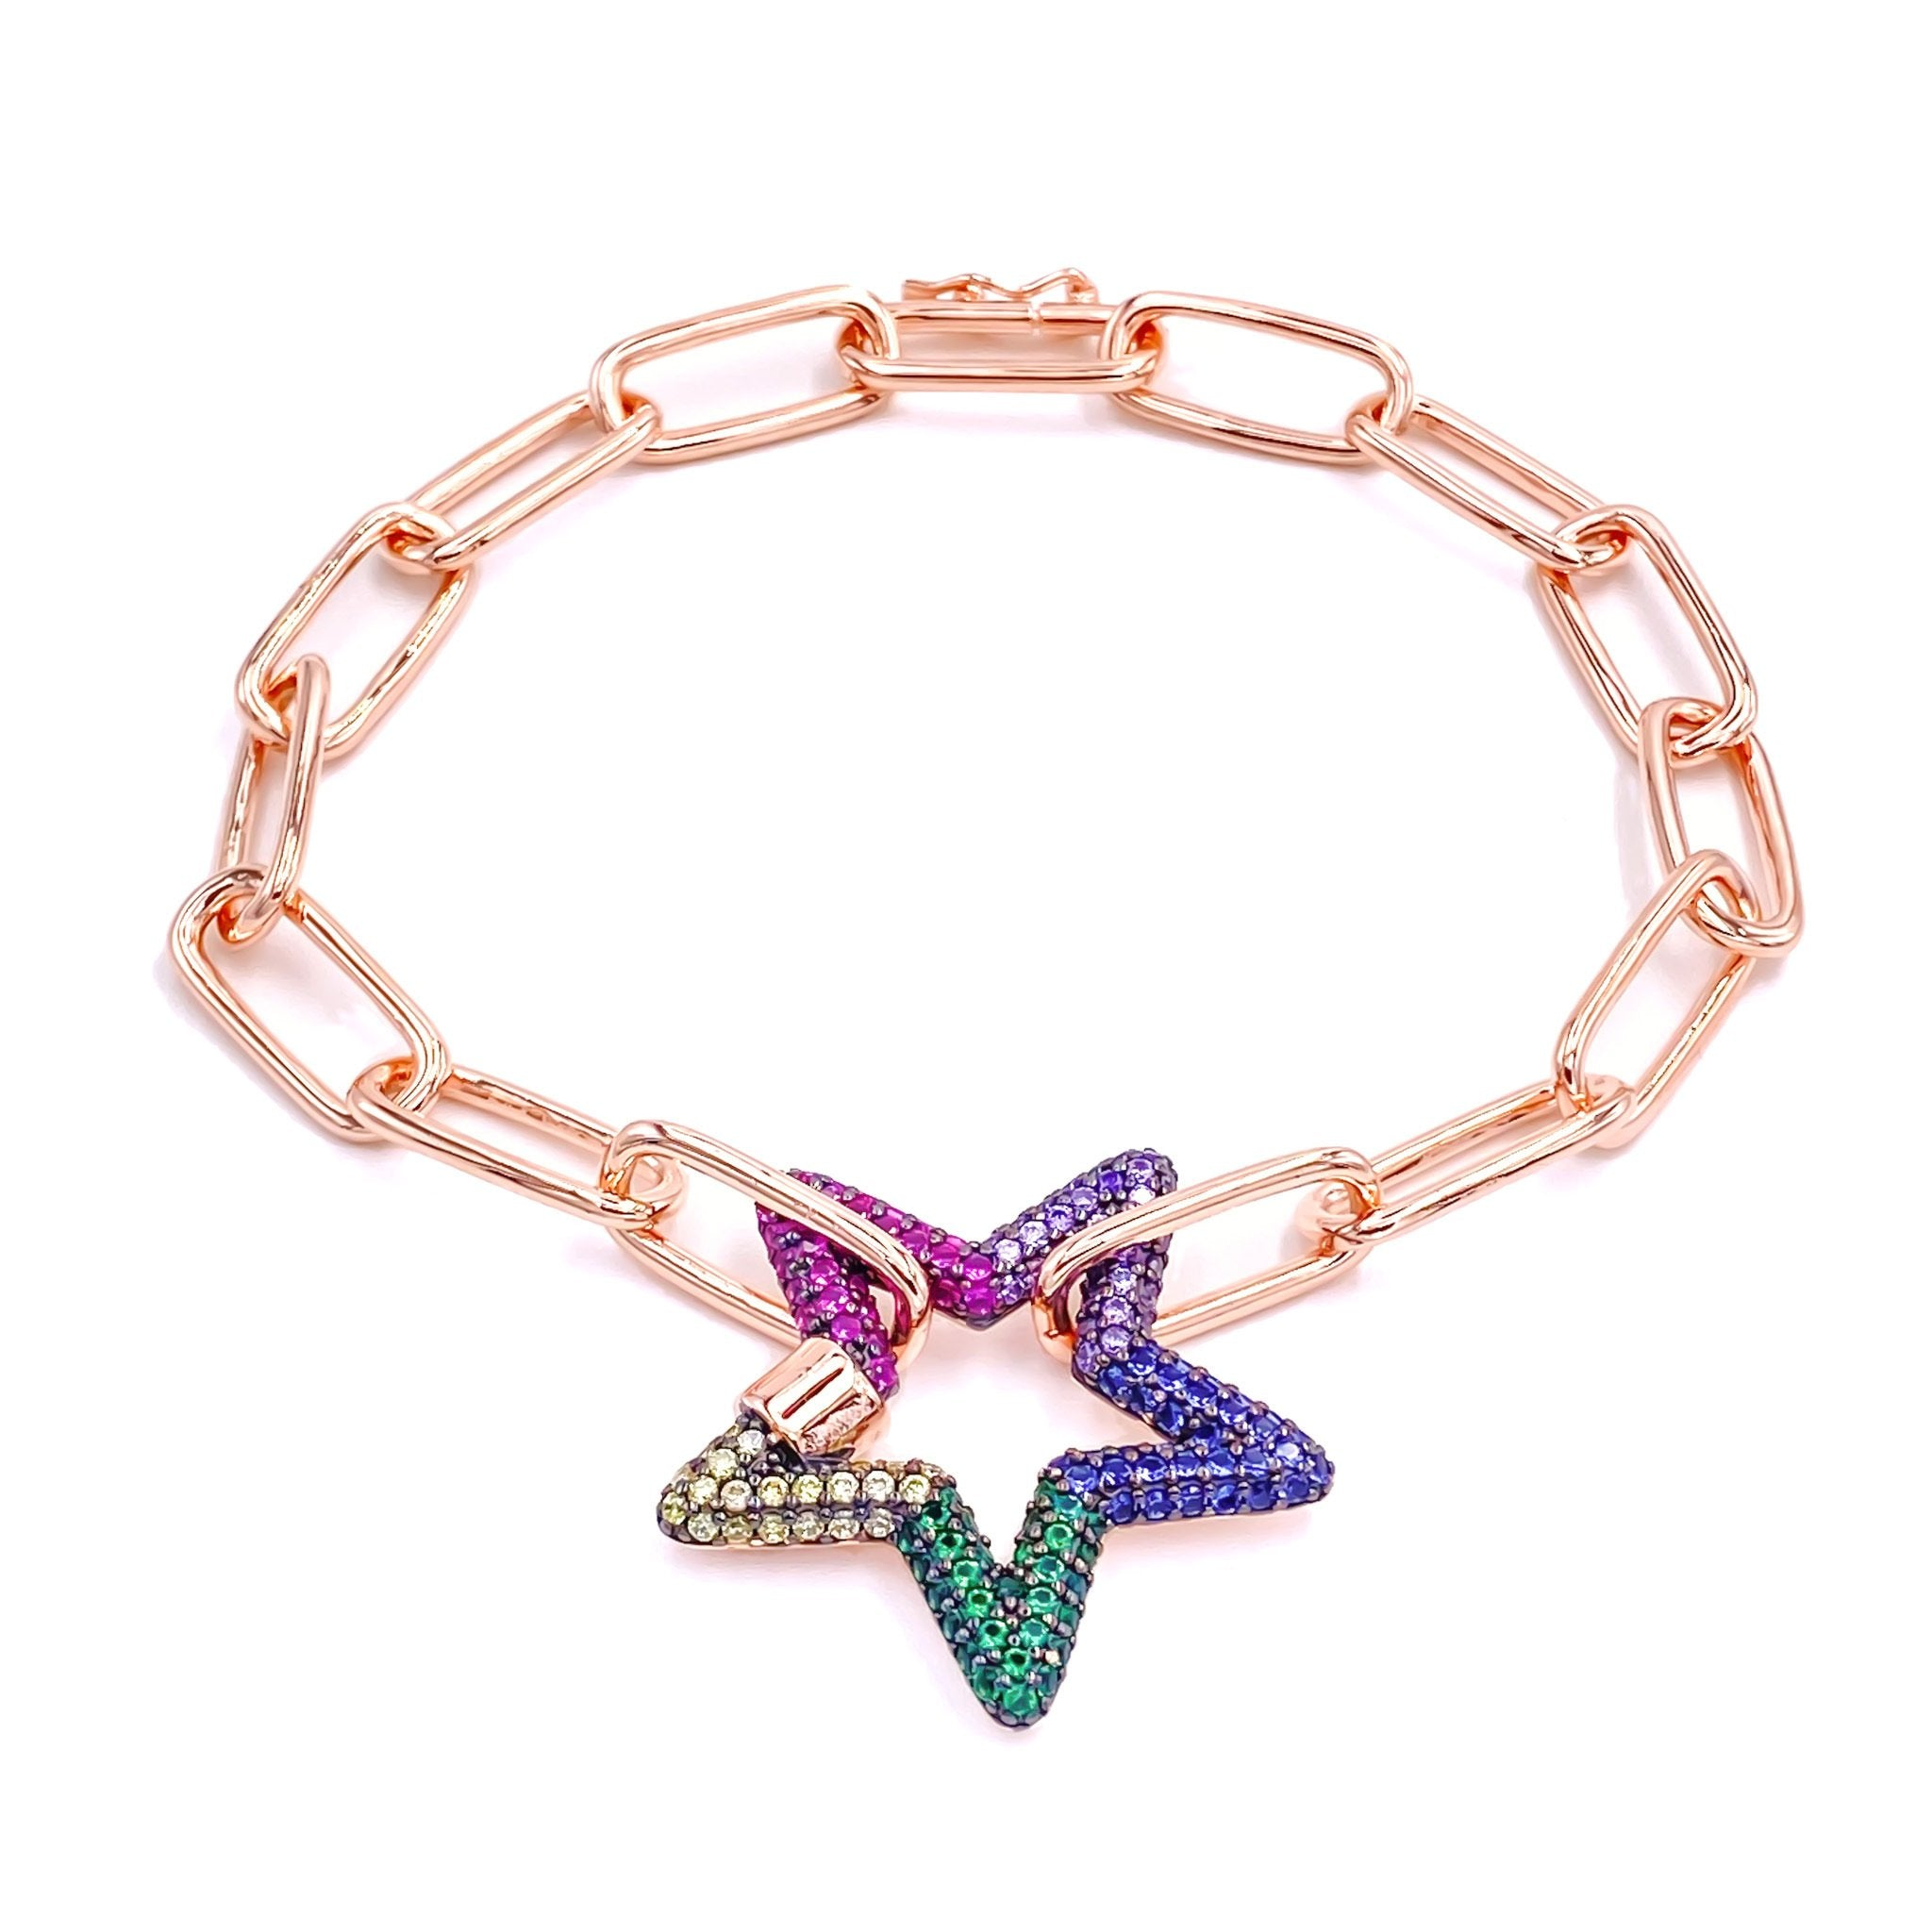 Rainbow Star Chain Bracelet